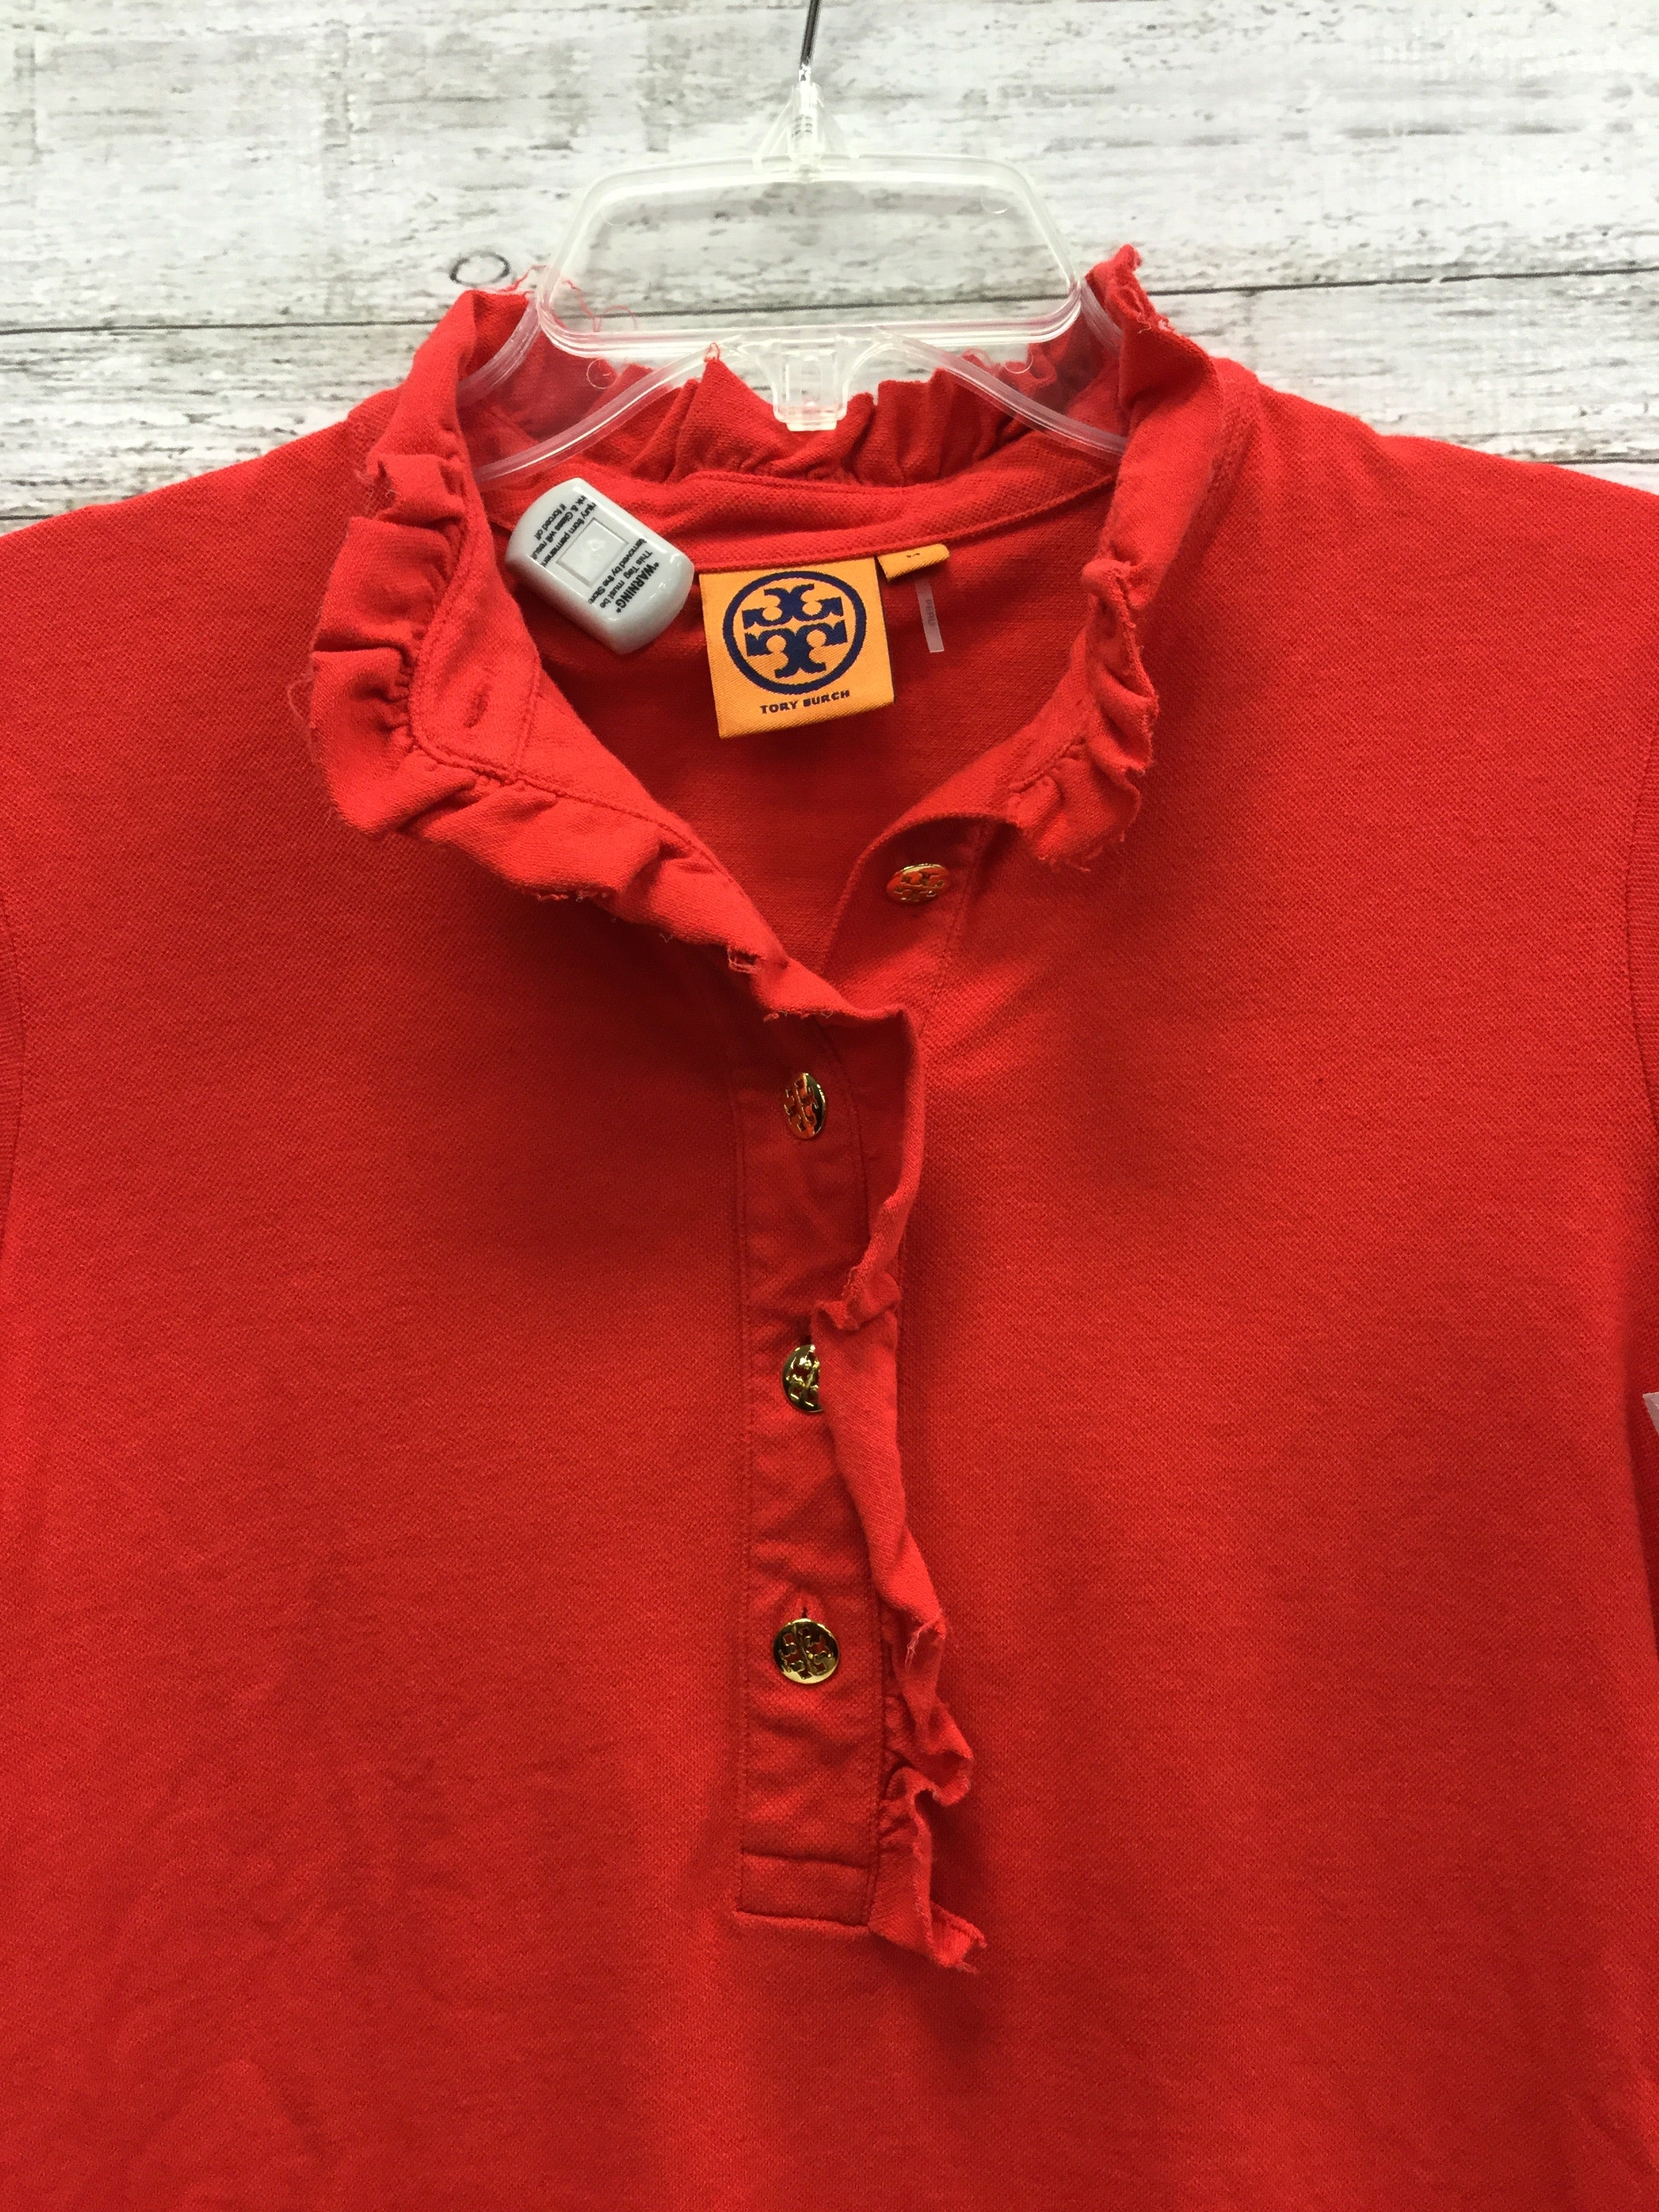 Photo #1 - BRAND: TORY BURCH , STYLE: TOP SHORT SLEEVE , COLOR: RED , SIZE: M , OTHER INFO: AS IS , SKU: 127-4876-8145, , THE COLLAR OF THIS TOP IN GENTLY USED. OTHERWISE THIS TOP IS IN GREAT CONDITION.